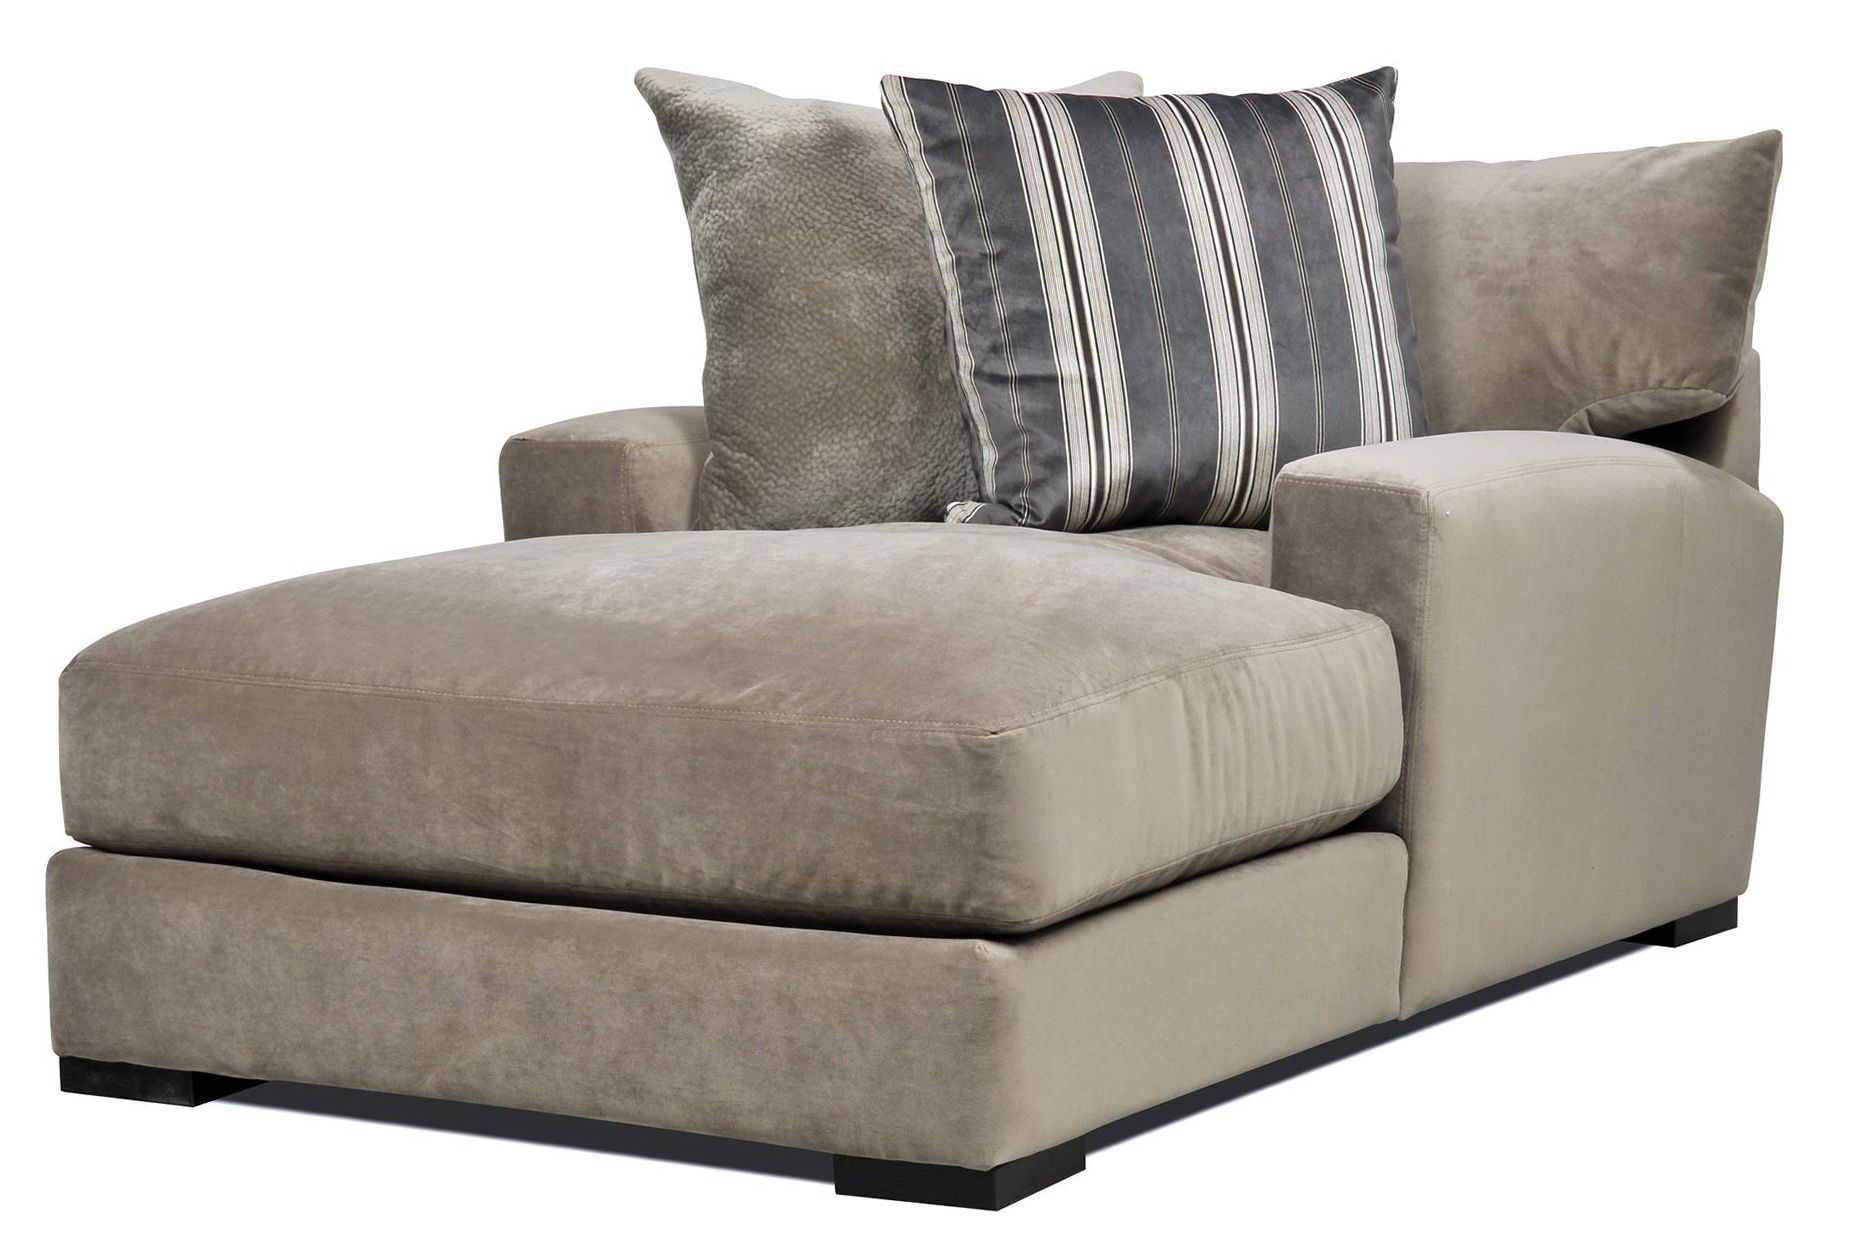 Double Chaise Lounge Sofa Stylish Double Chaise Lounge